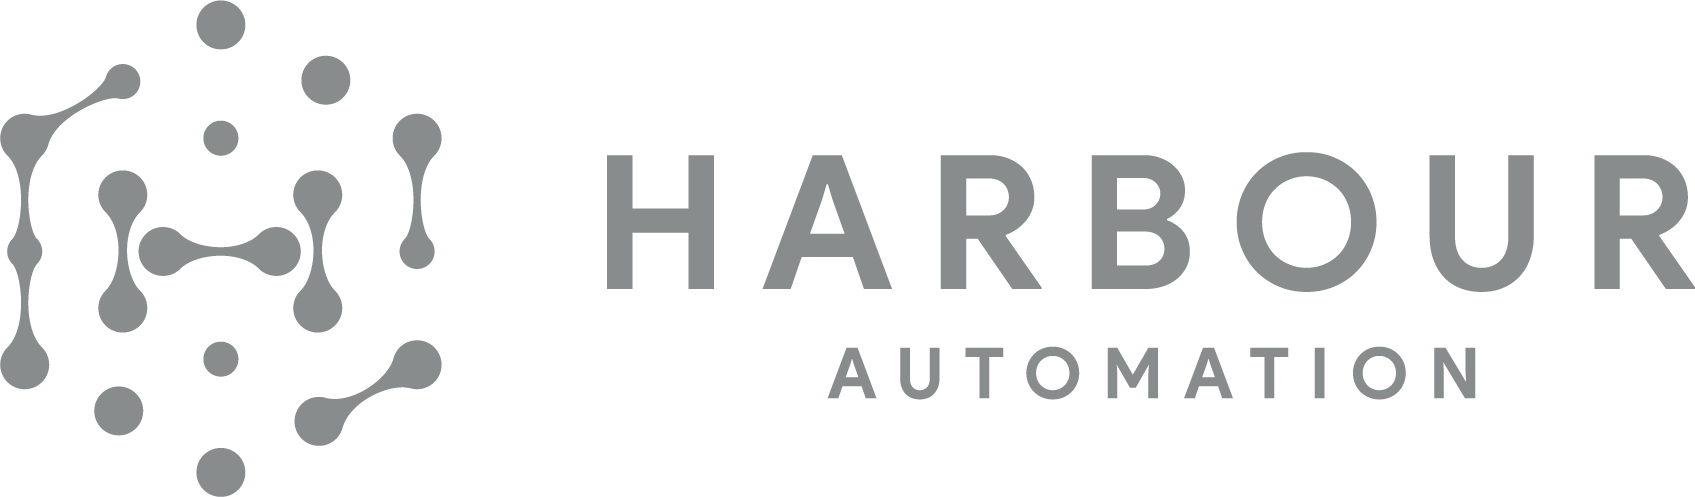 harbour-automation